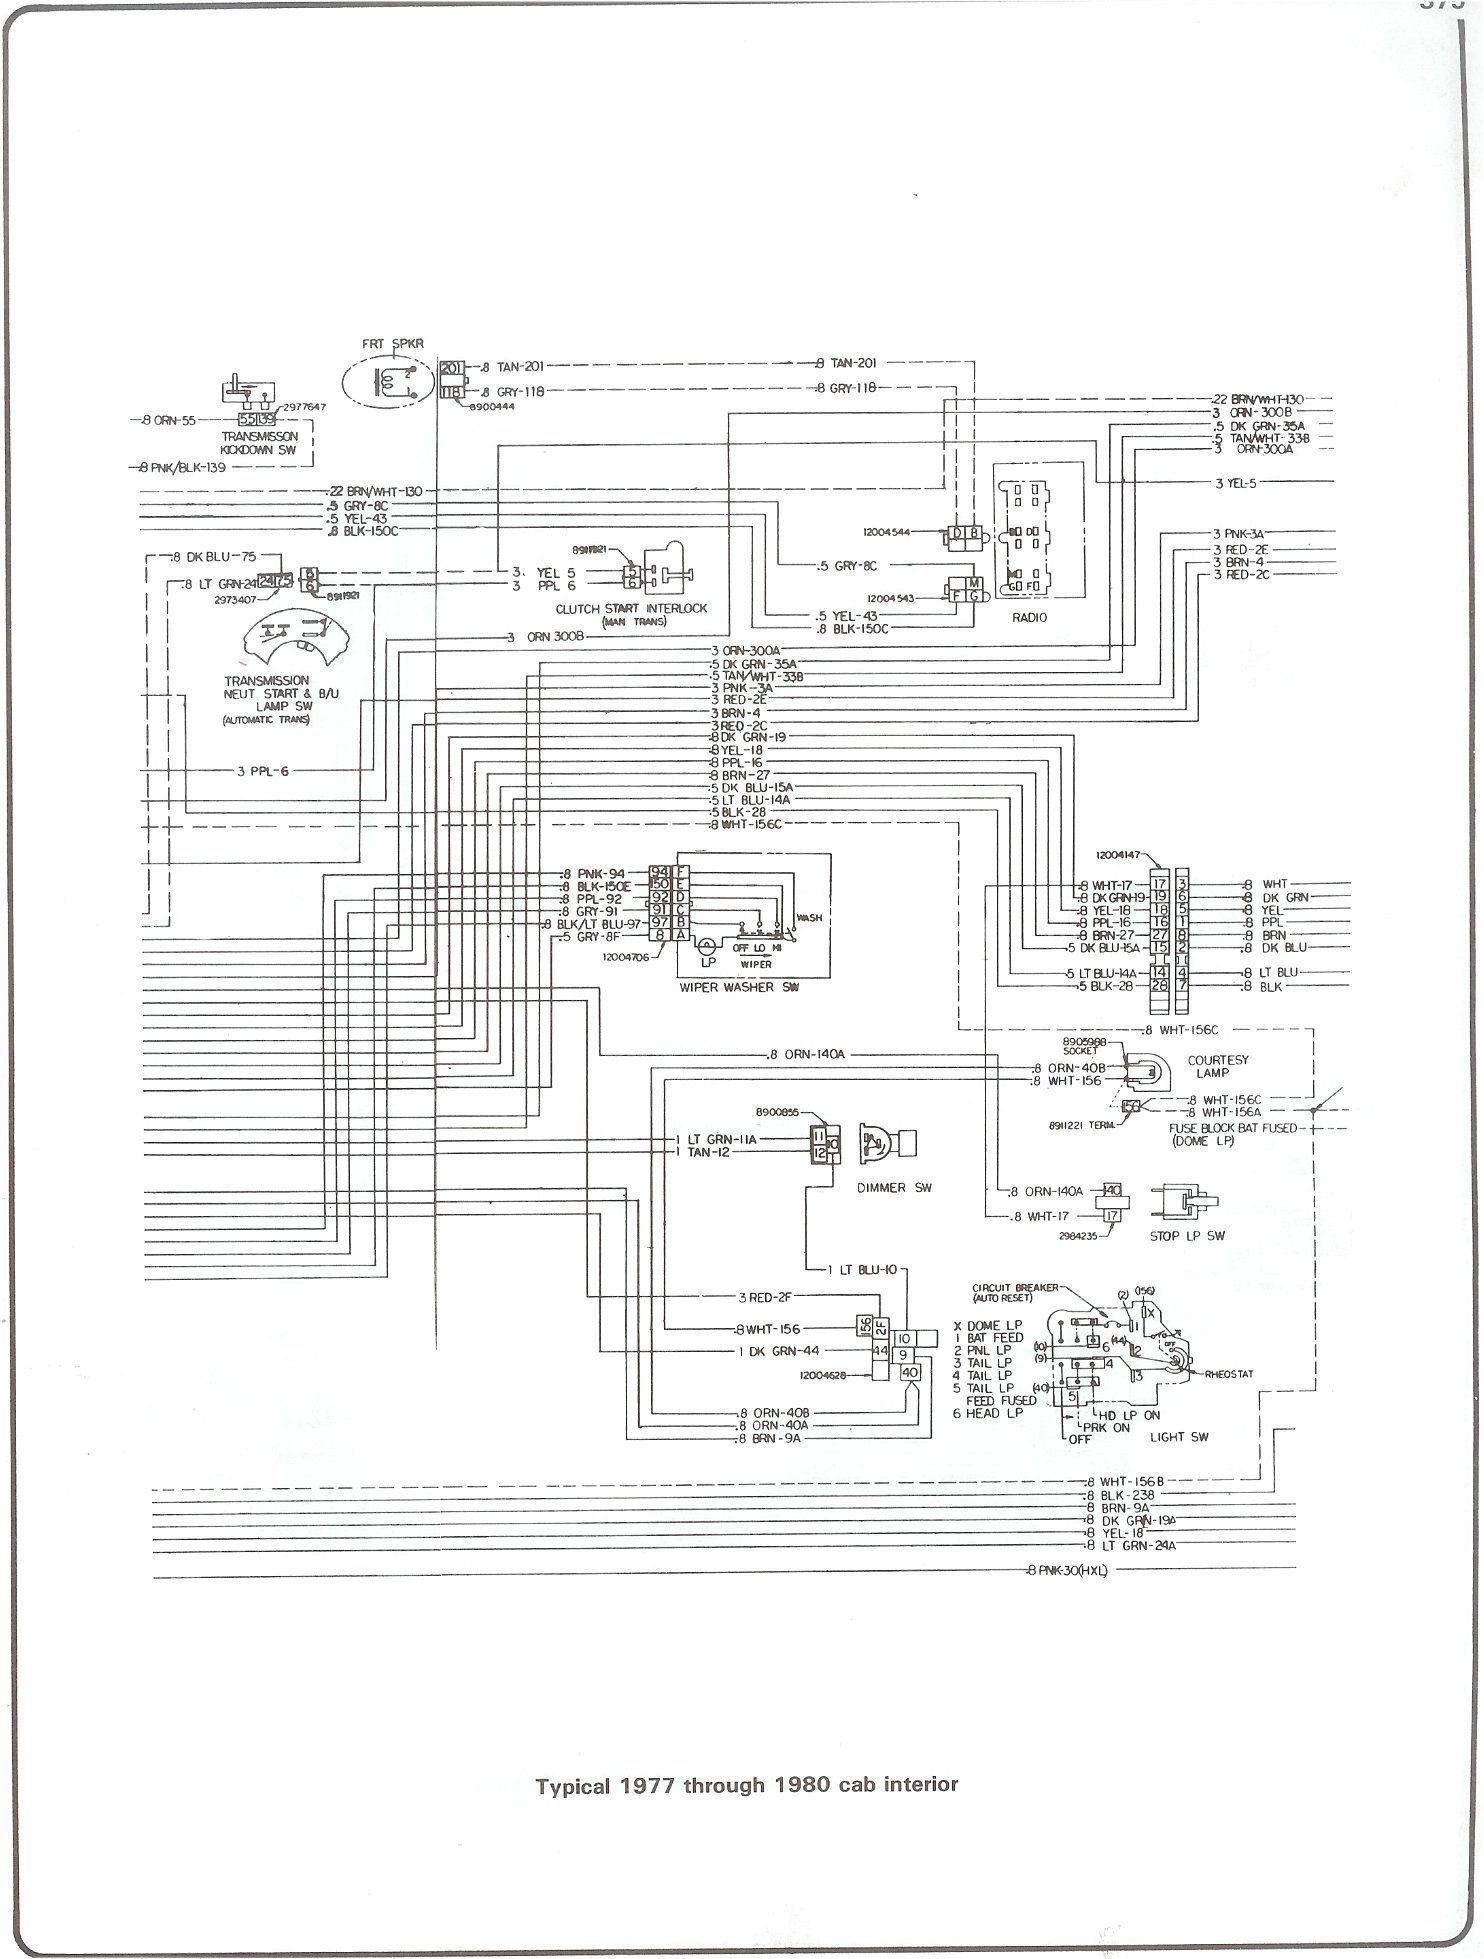 1977 Chevy Nova Fuse Box Diagram Get Free Image About Wiring Diagram